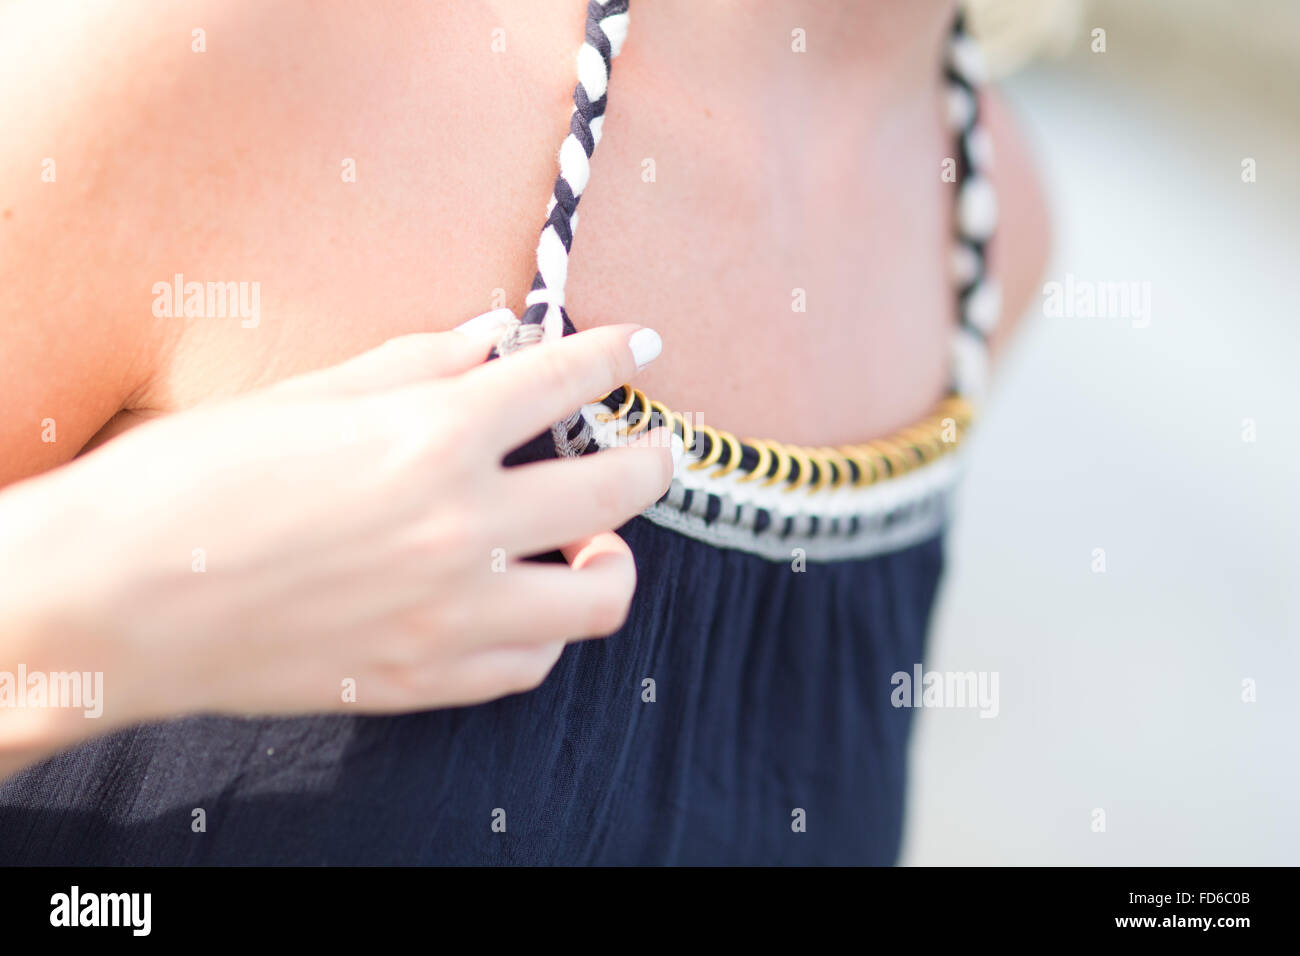 Midsection Of Woman Adjusting Sundress Stock Photo